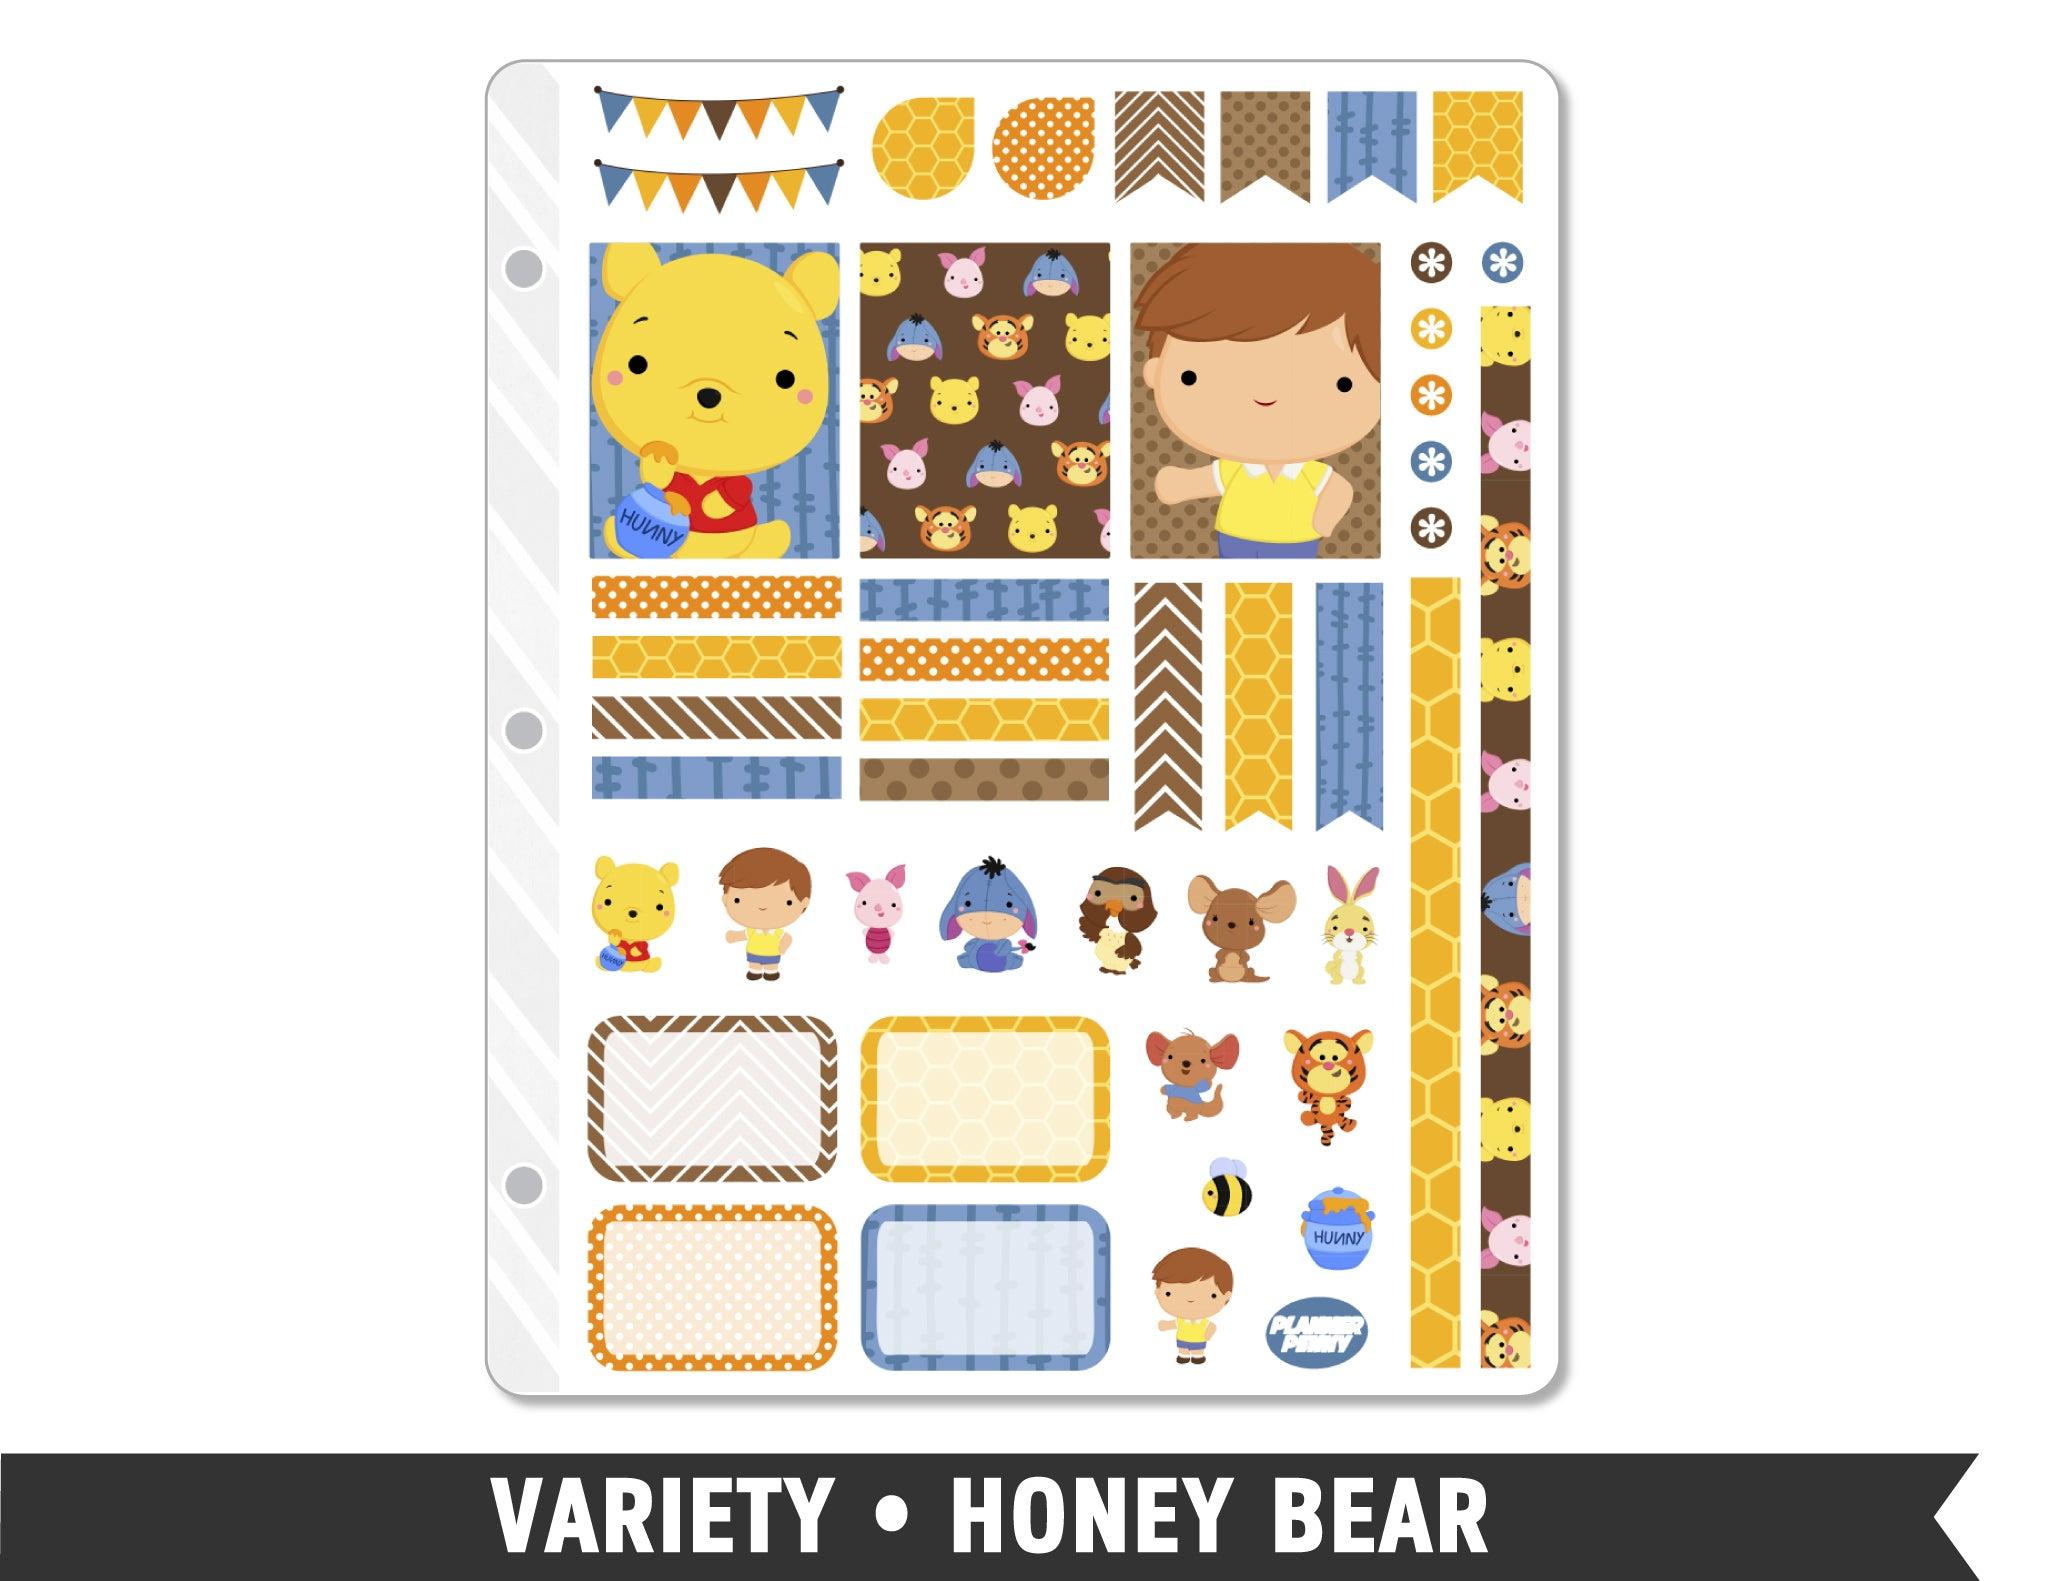 Variety • Honey Bear Weekly Spread Planner Stickers - Planner Penny